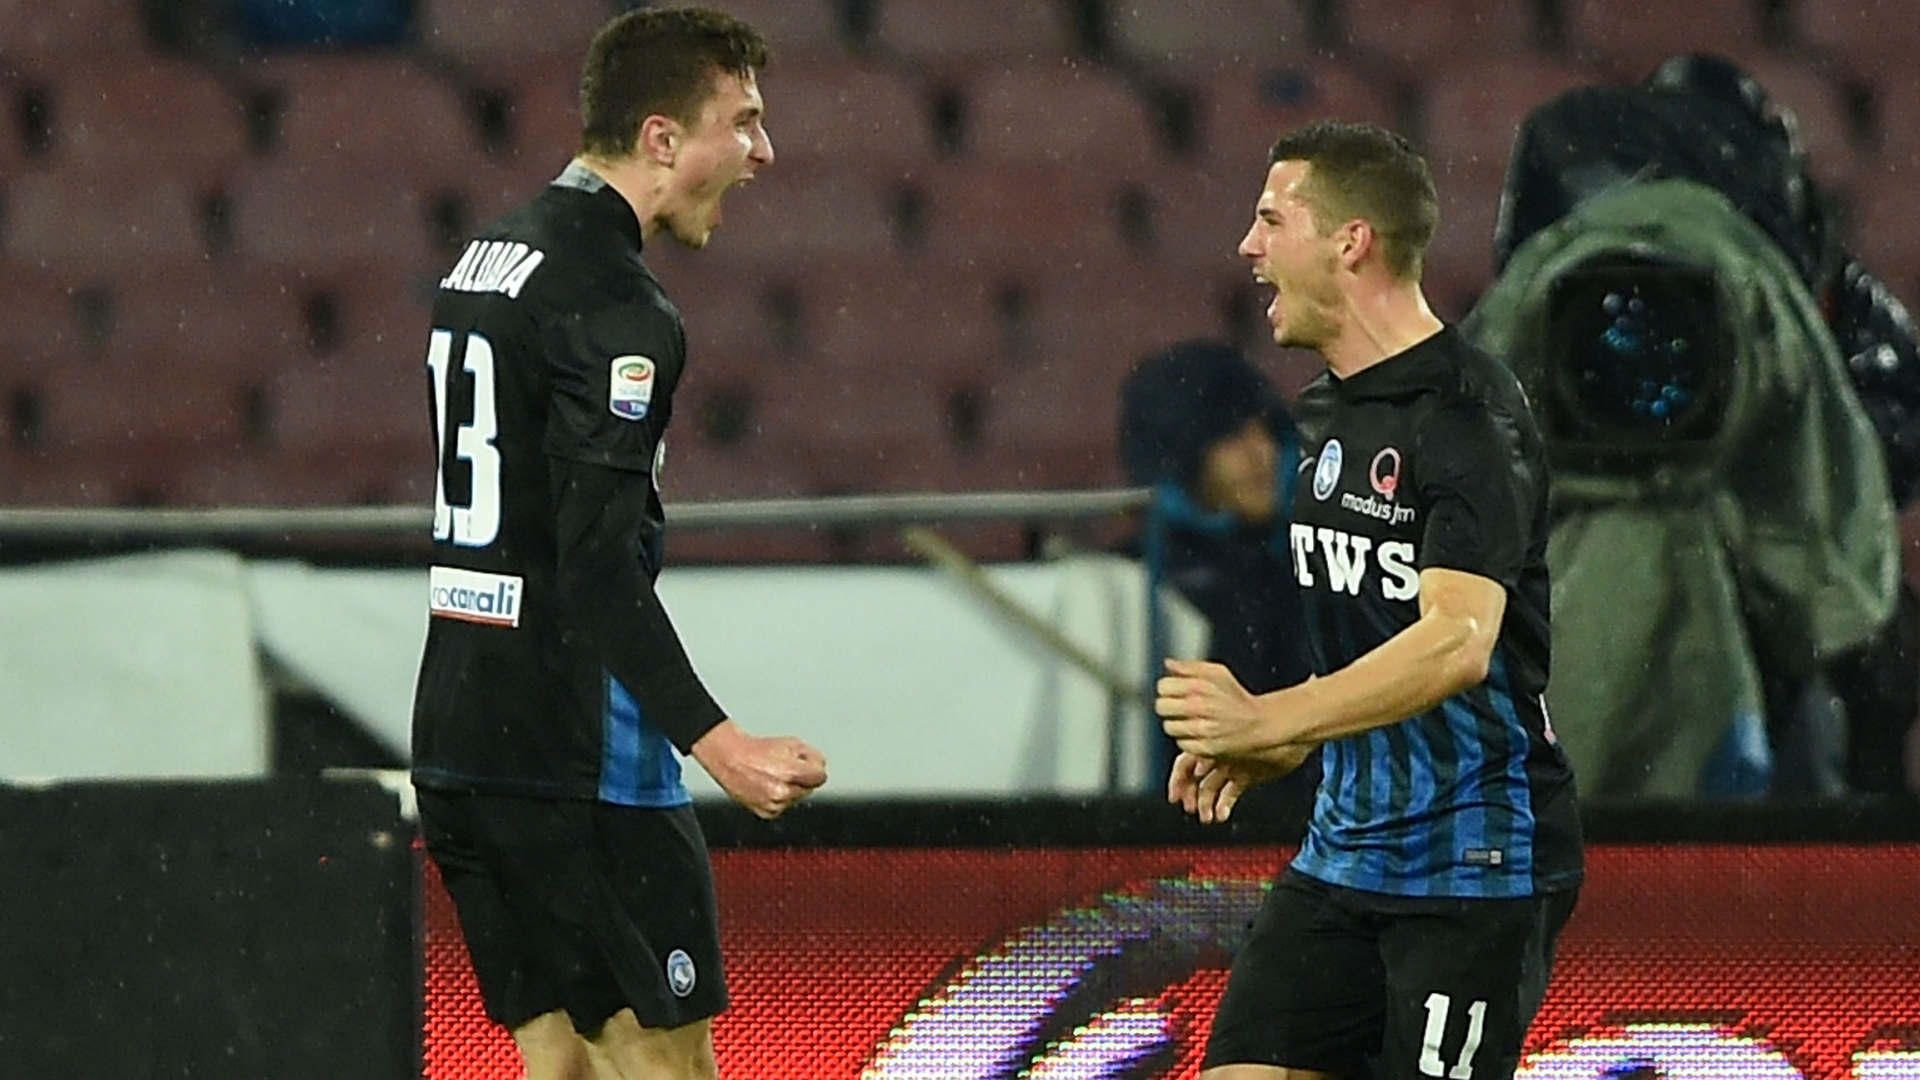 Napoli 0-2 Atalanta risultato finale: highlights e video gol